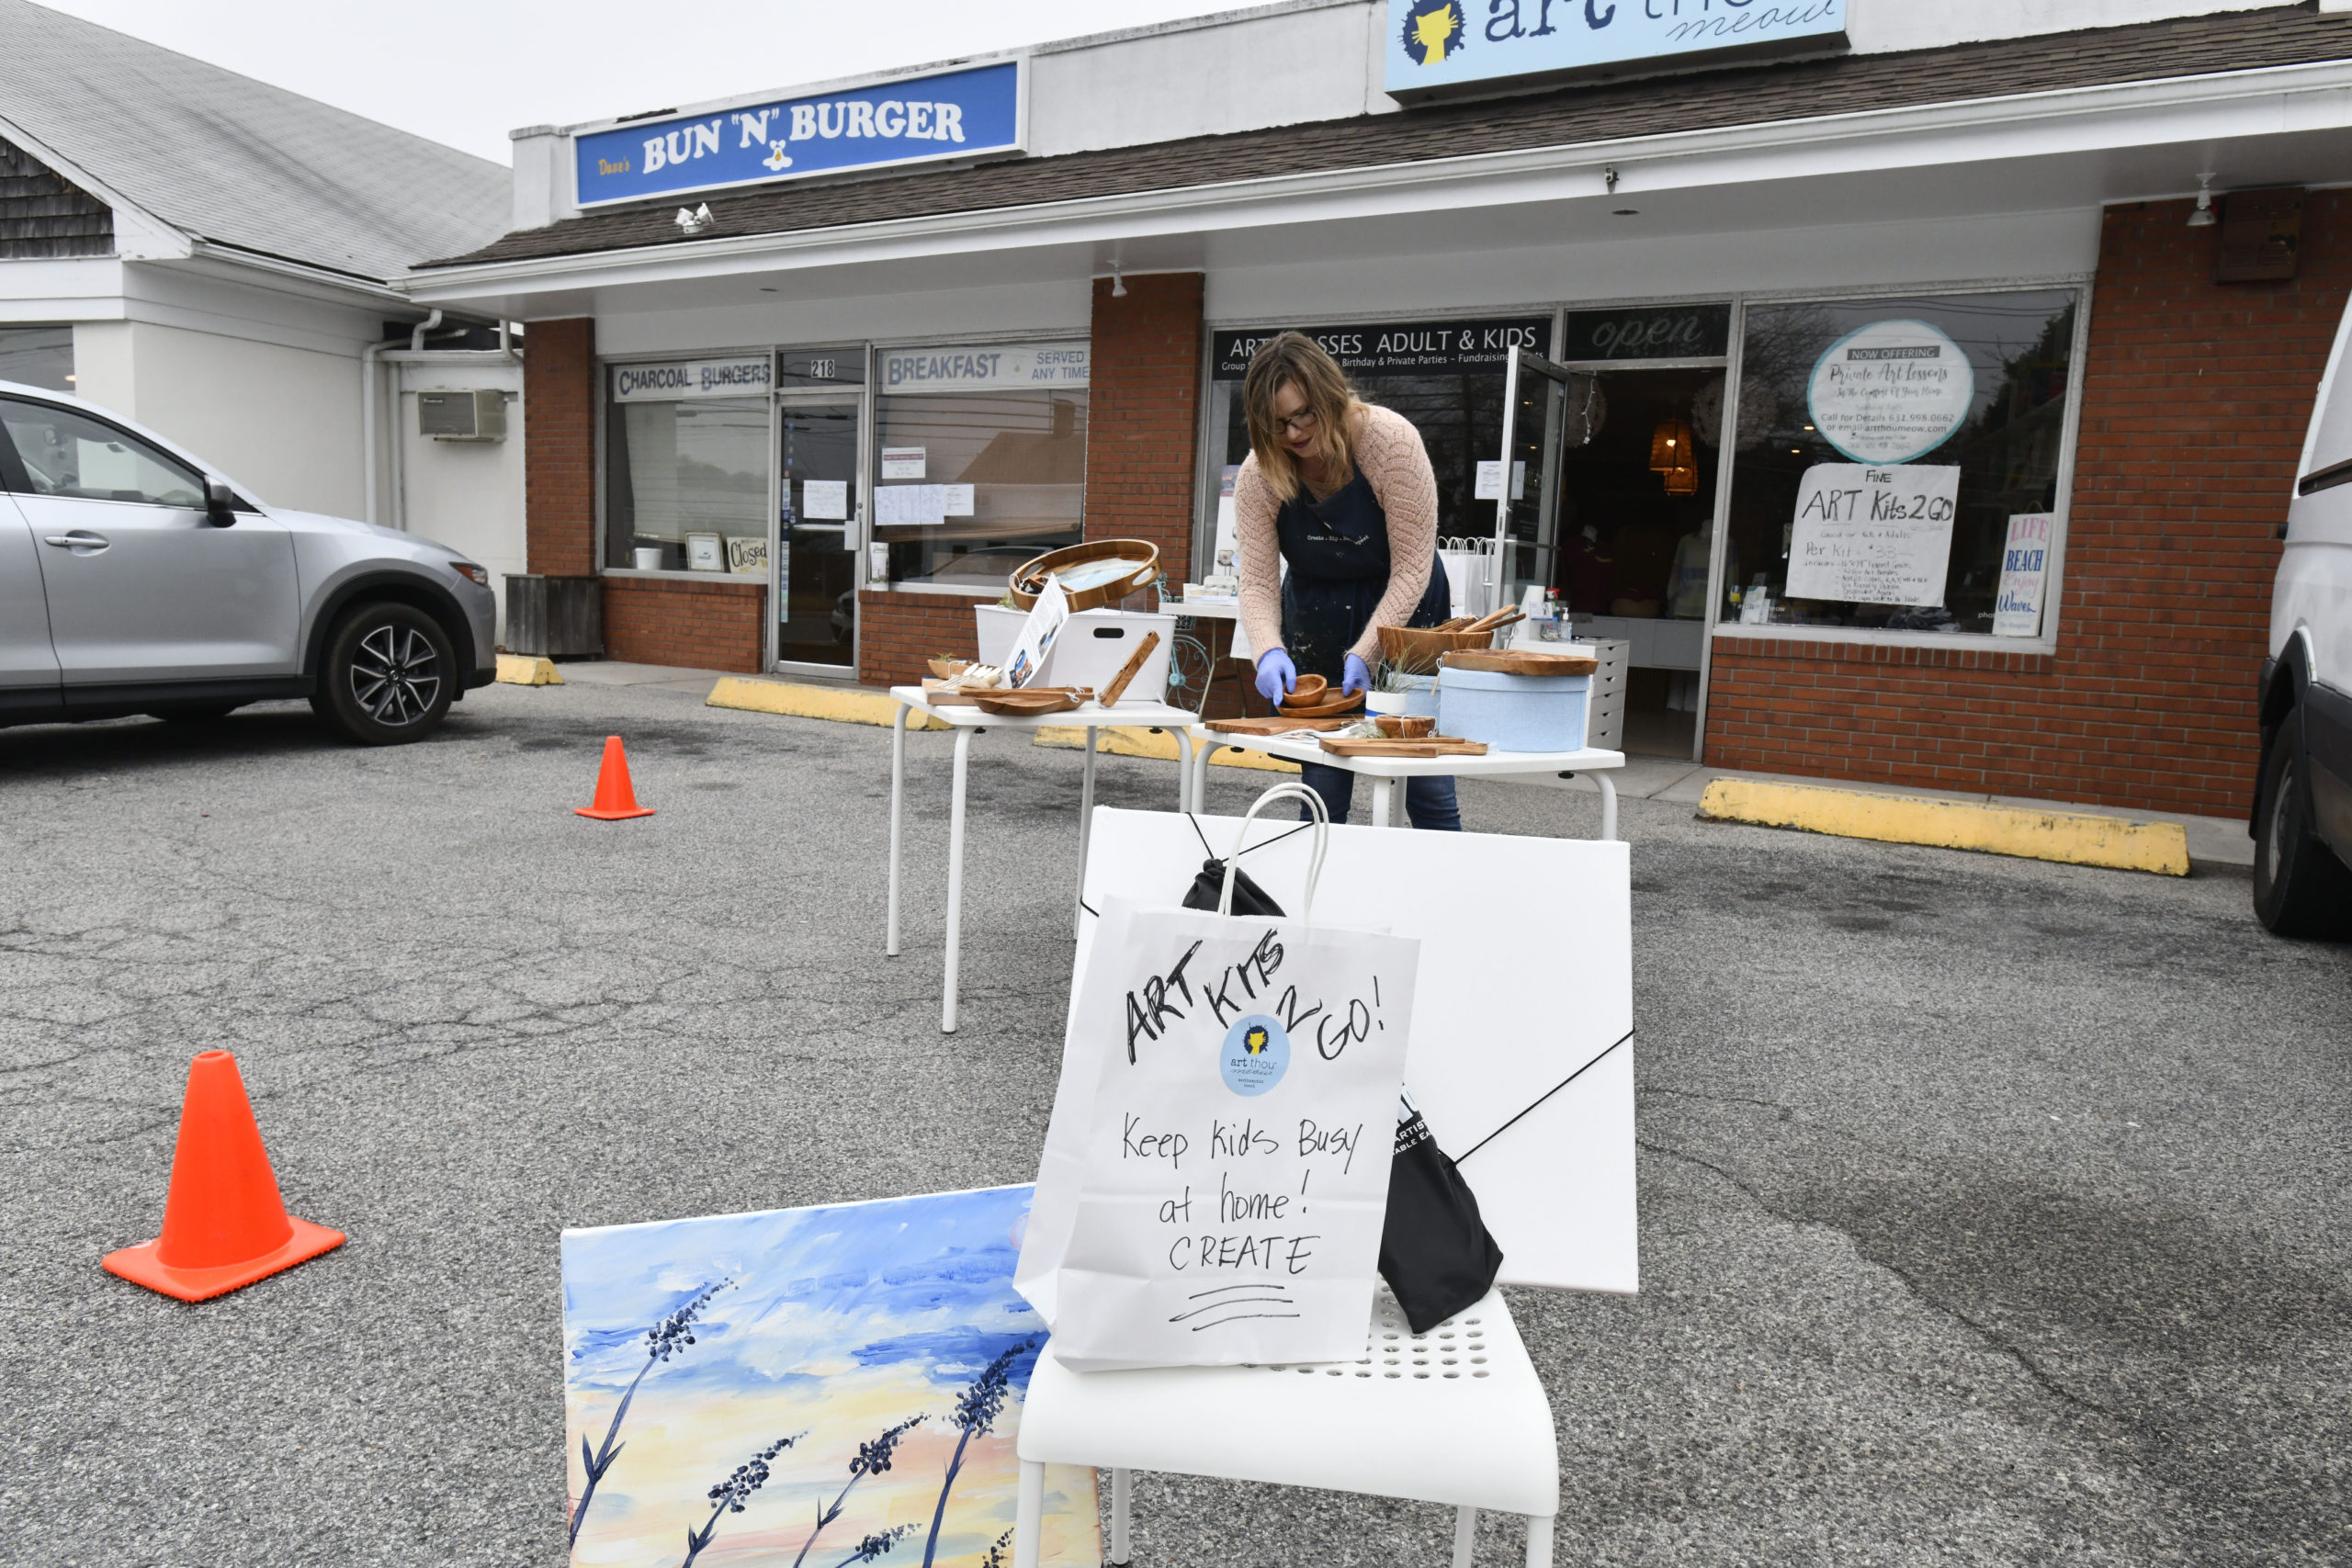 Jaime Booth of Art Thou Meow in Westhampton Beach was selling Art Kits 2 Go in front of her shop on Friday afternoon.   DANA SHAW